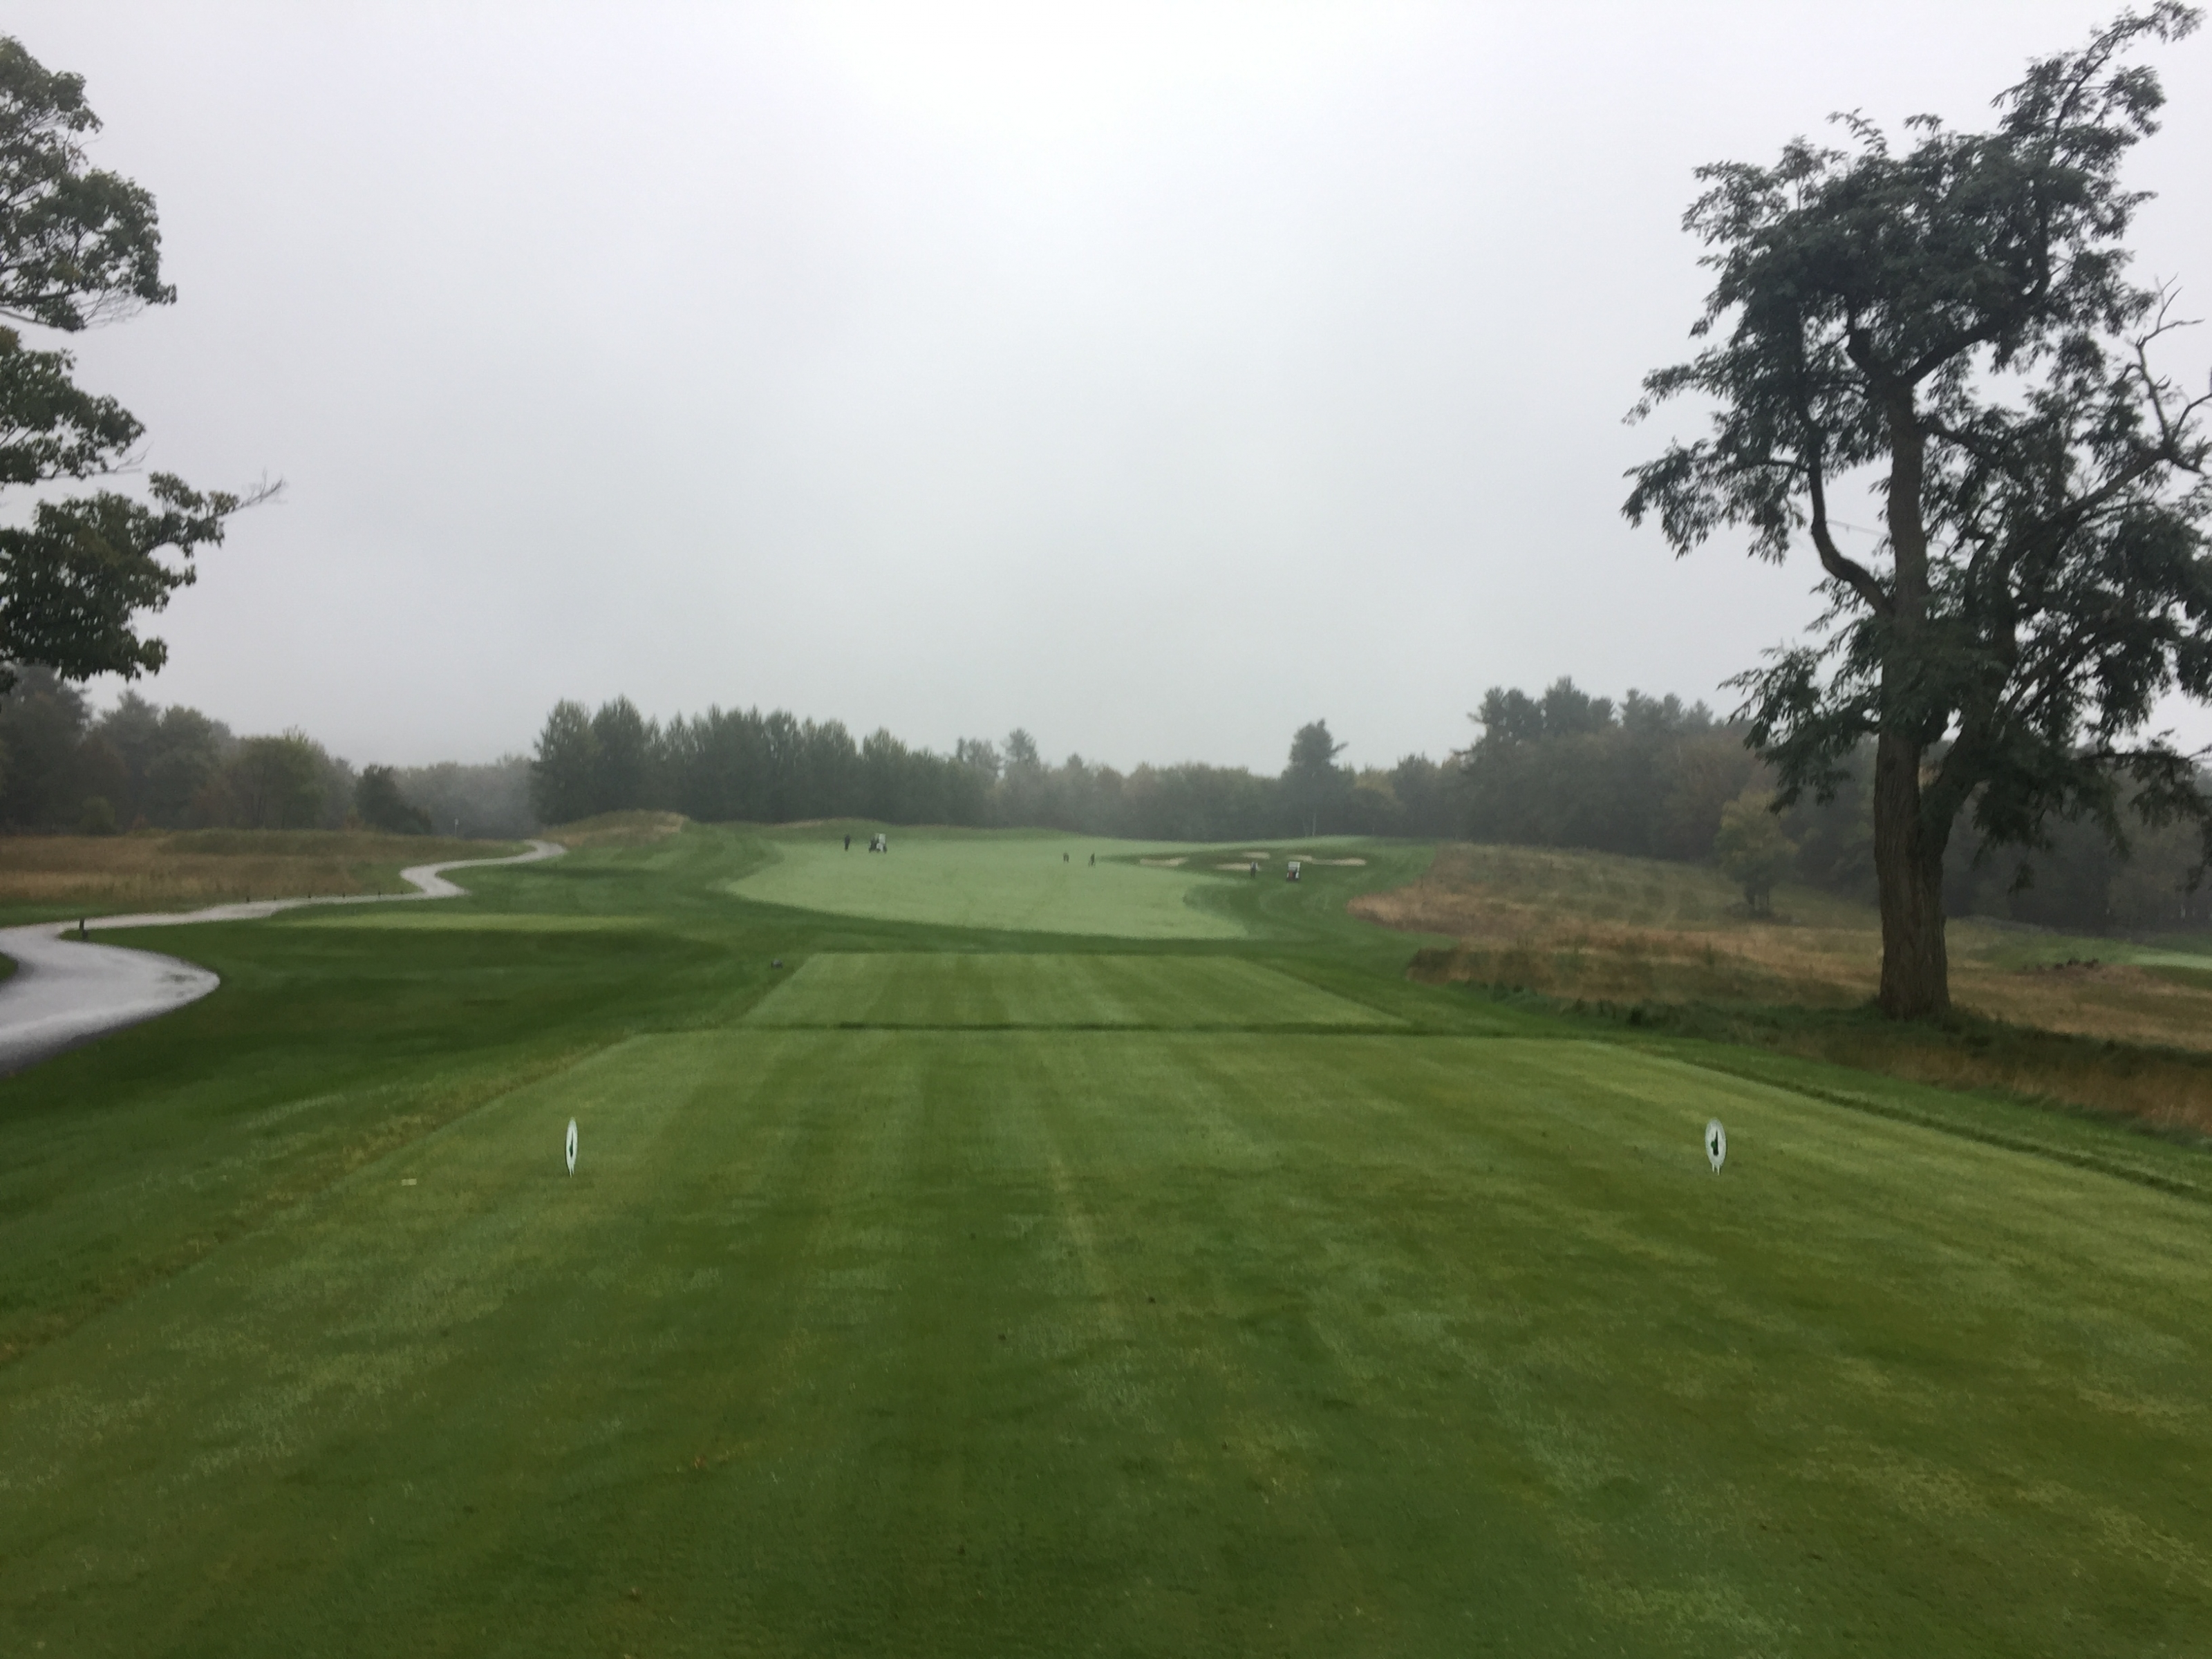 Rain Hinders Completion of First Round of Mid-Amateur at Baker Hill